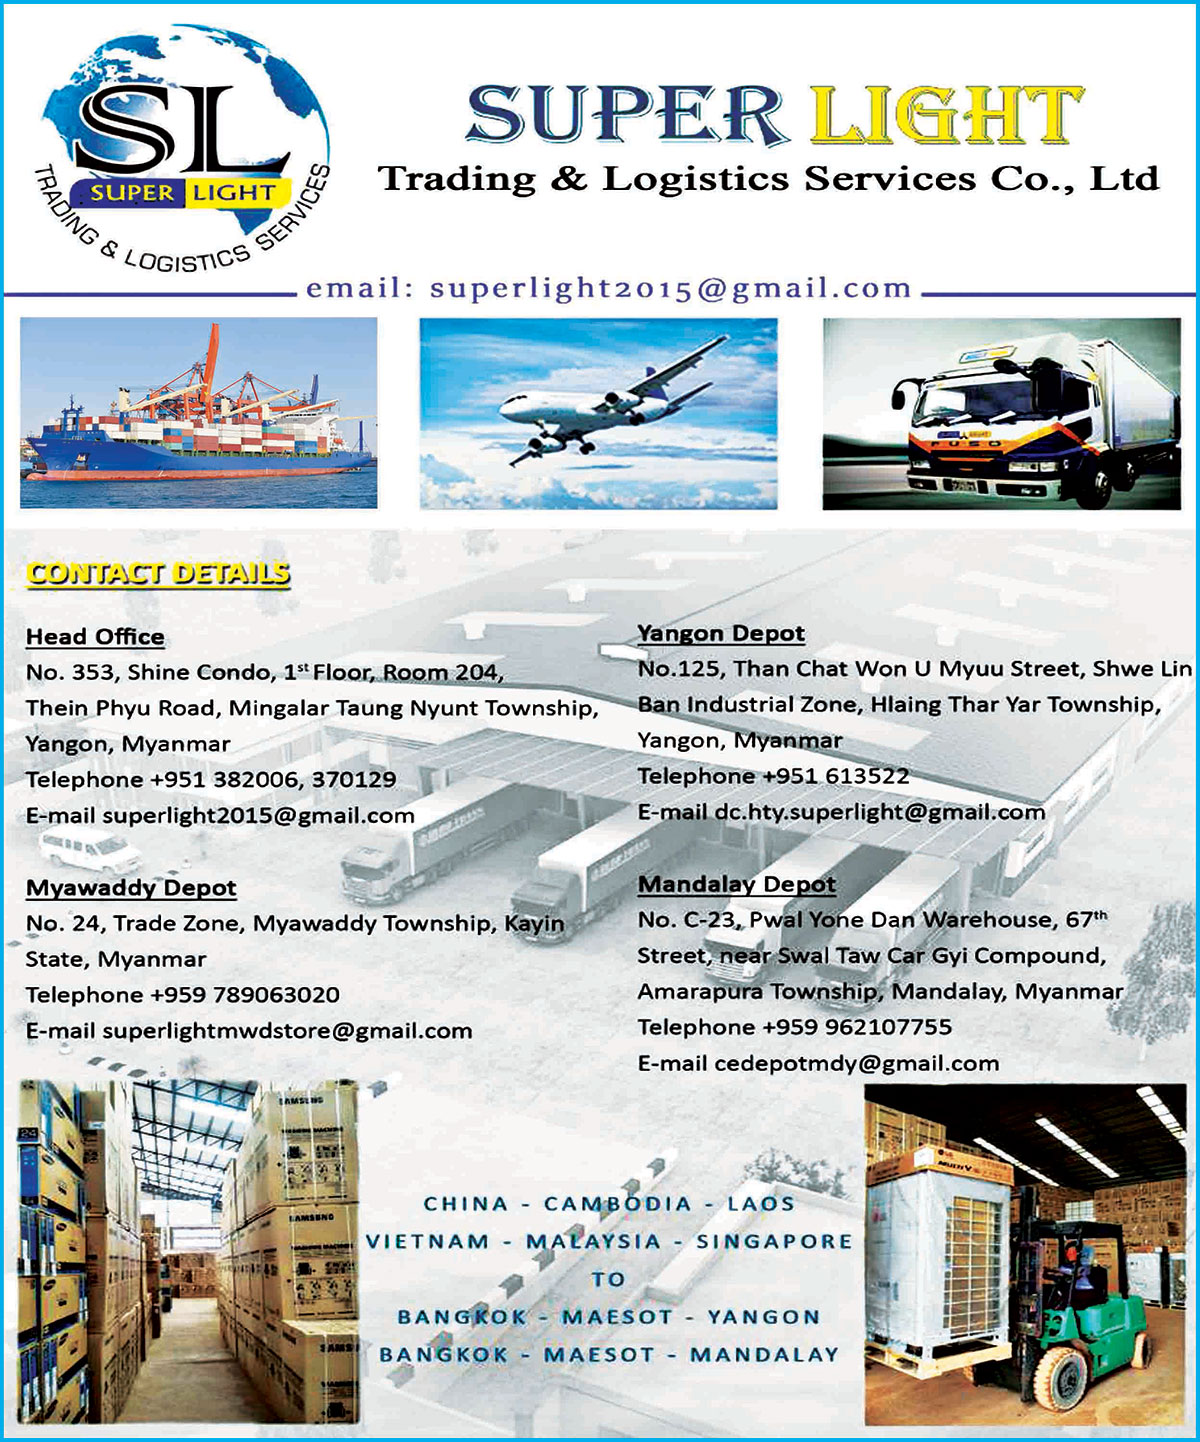 Super Light Trading & Logistics Services Co., Ltd.Freight Forwarders